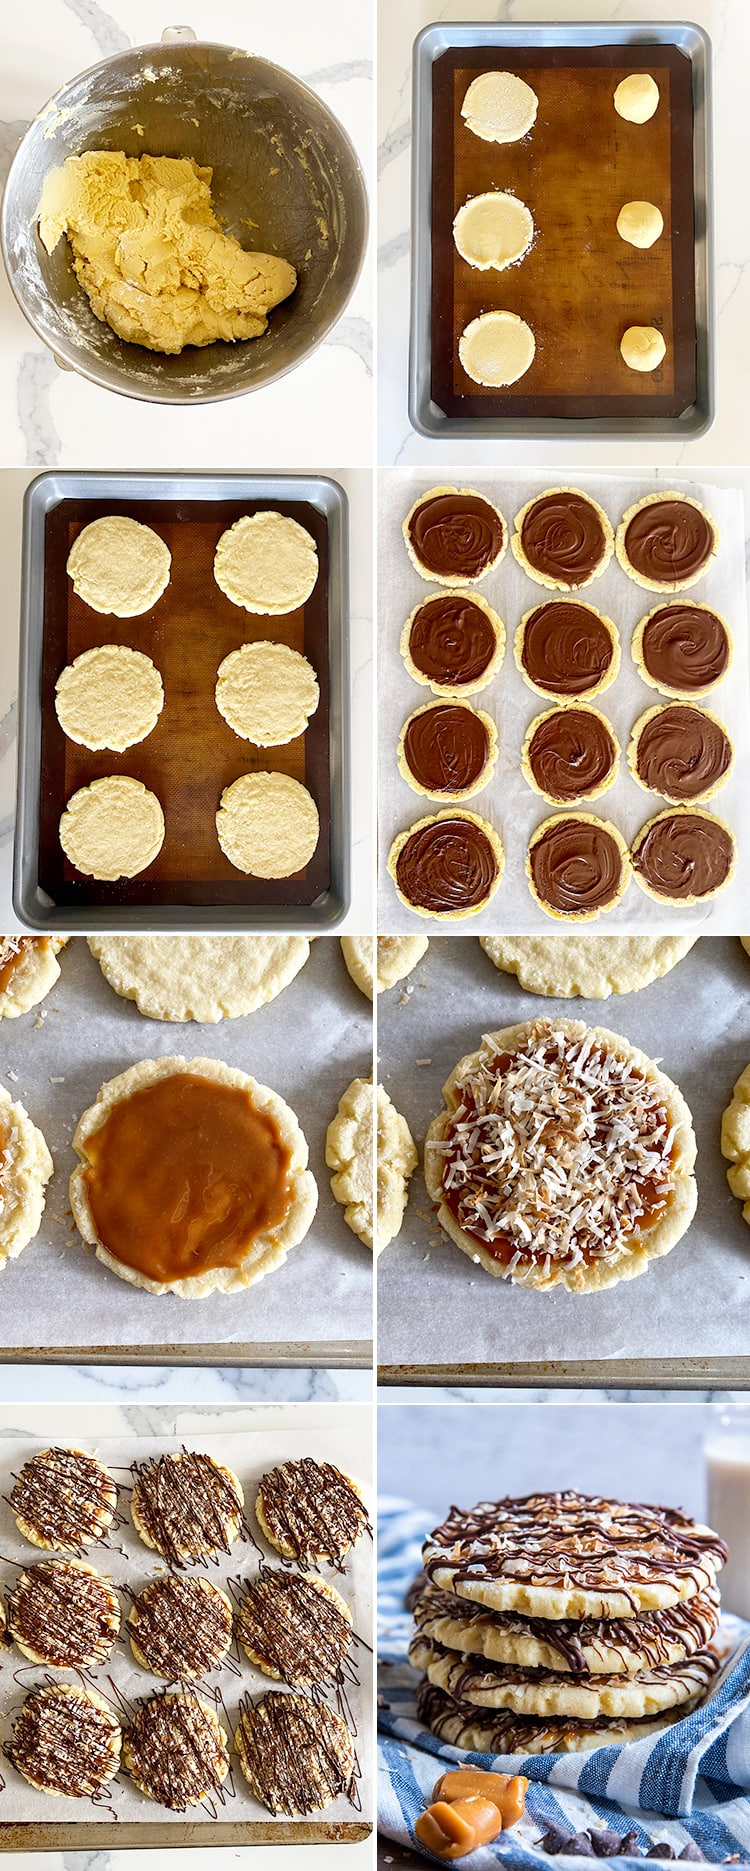 A collage of 8 photos showing how to make samoa sugar cookies. 1) The cookie dough 2) The cookie dough on the tray, then being pressed down 3) The baked cookies 4) The bottom of the cookies with chocolate on them 5) The top of the cookies with caramel on them 6) The caramel topped with coconut 7) The cookies drizzled with chocolate 8) The cookies in a stack in a posed photo.